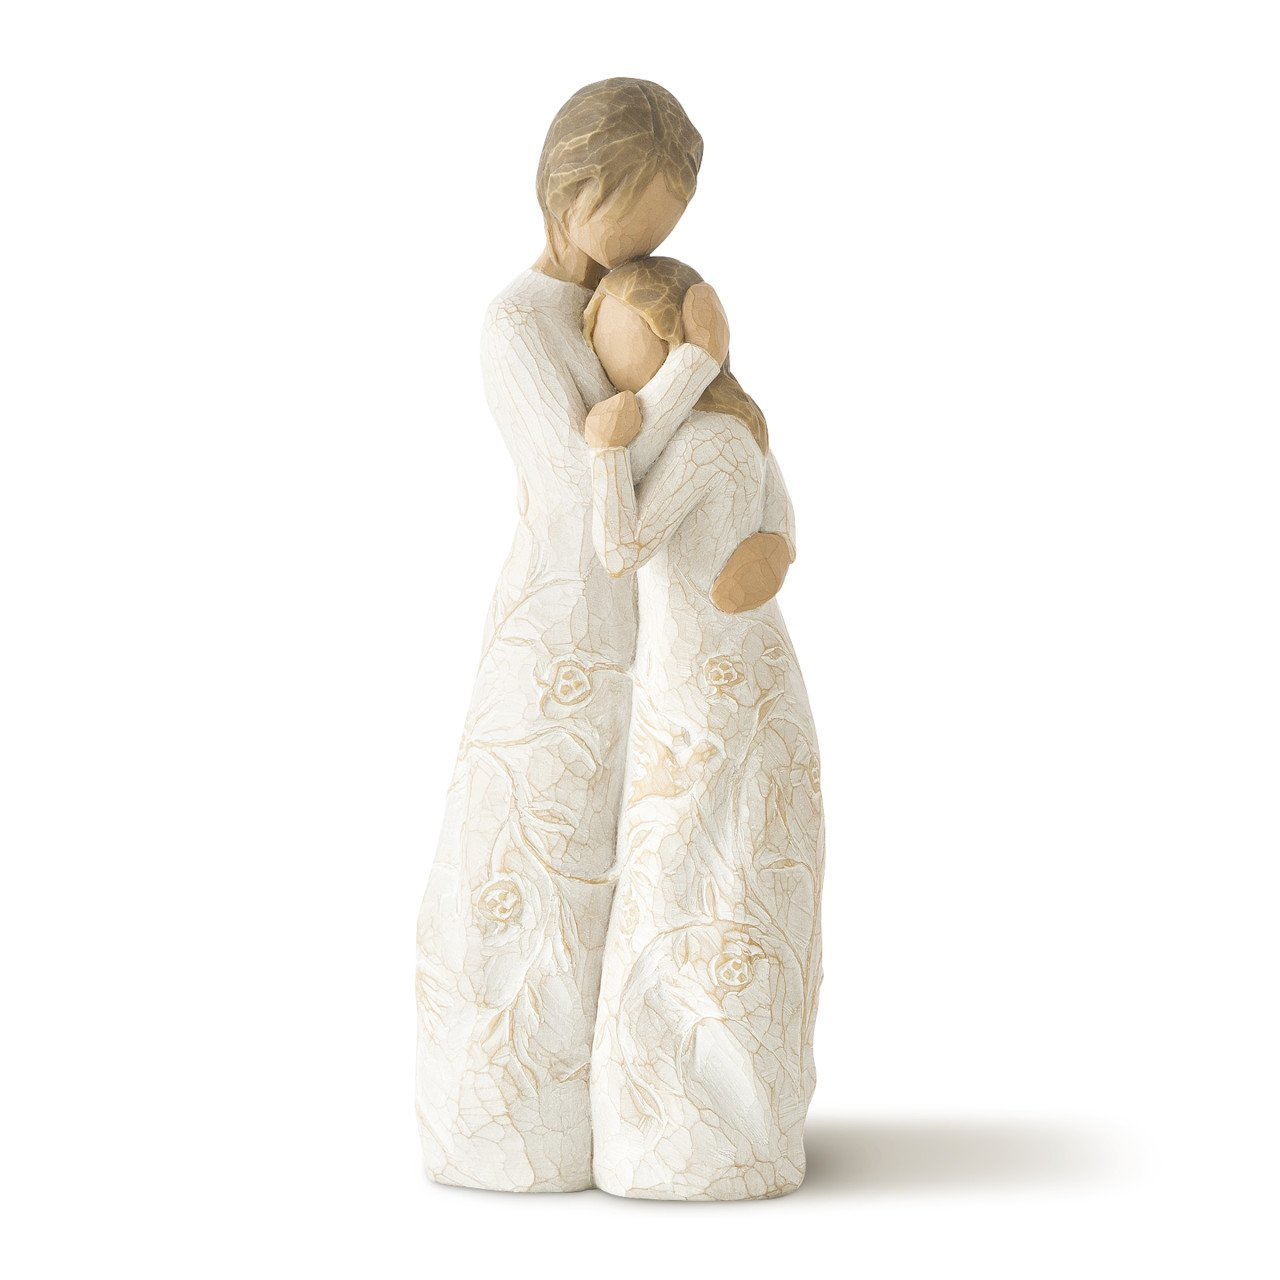 Willow Tree hand-painted sculpted figure, Close to me (26222)